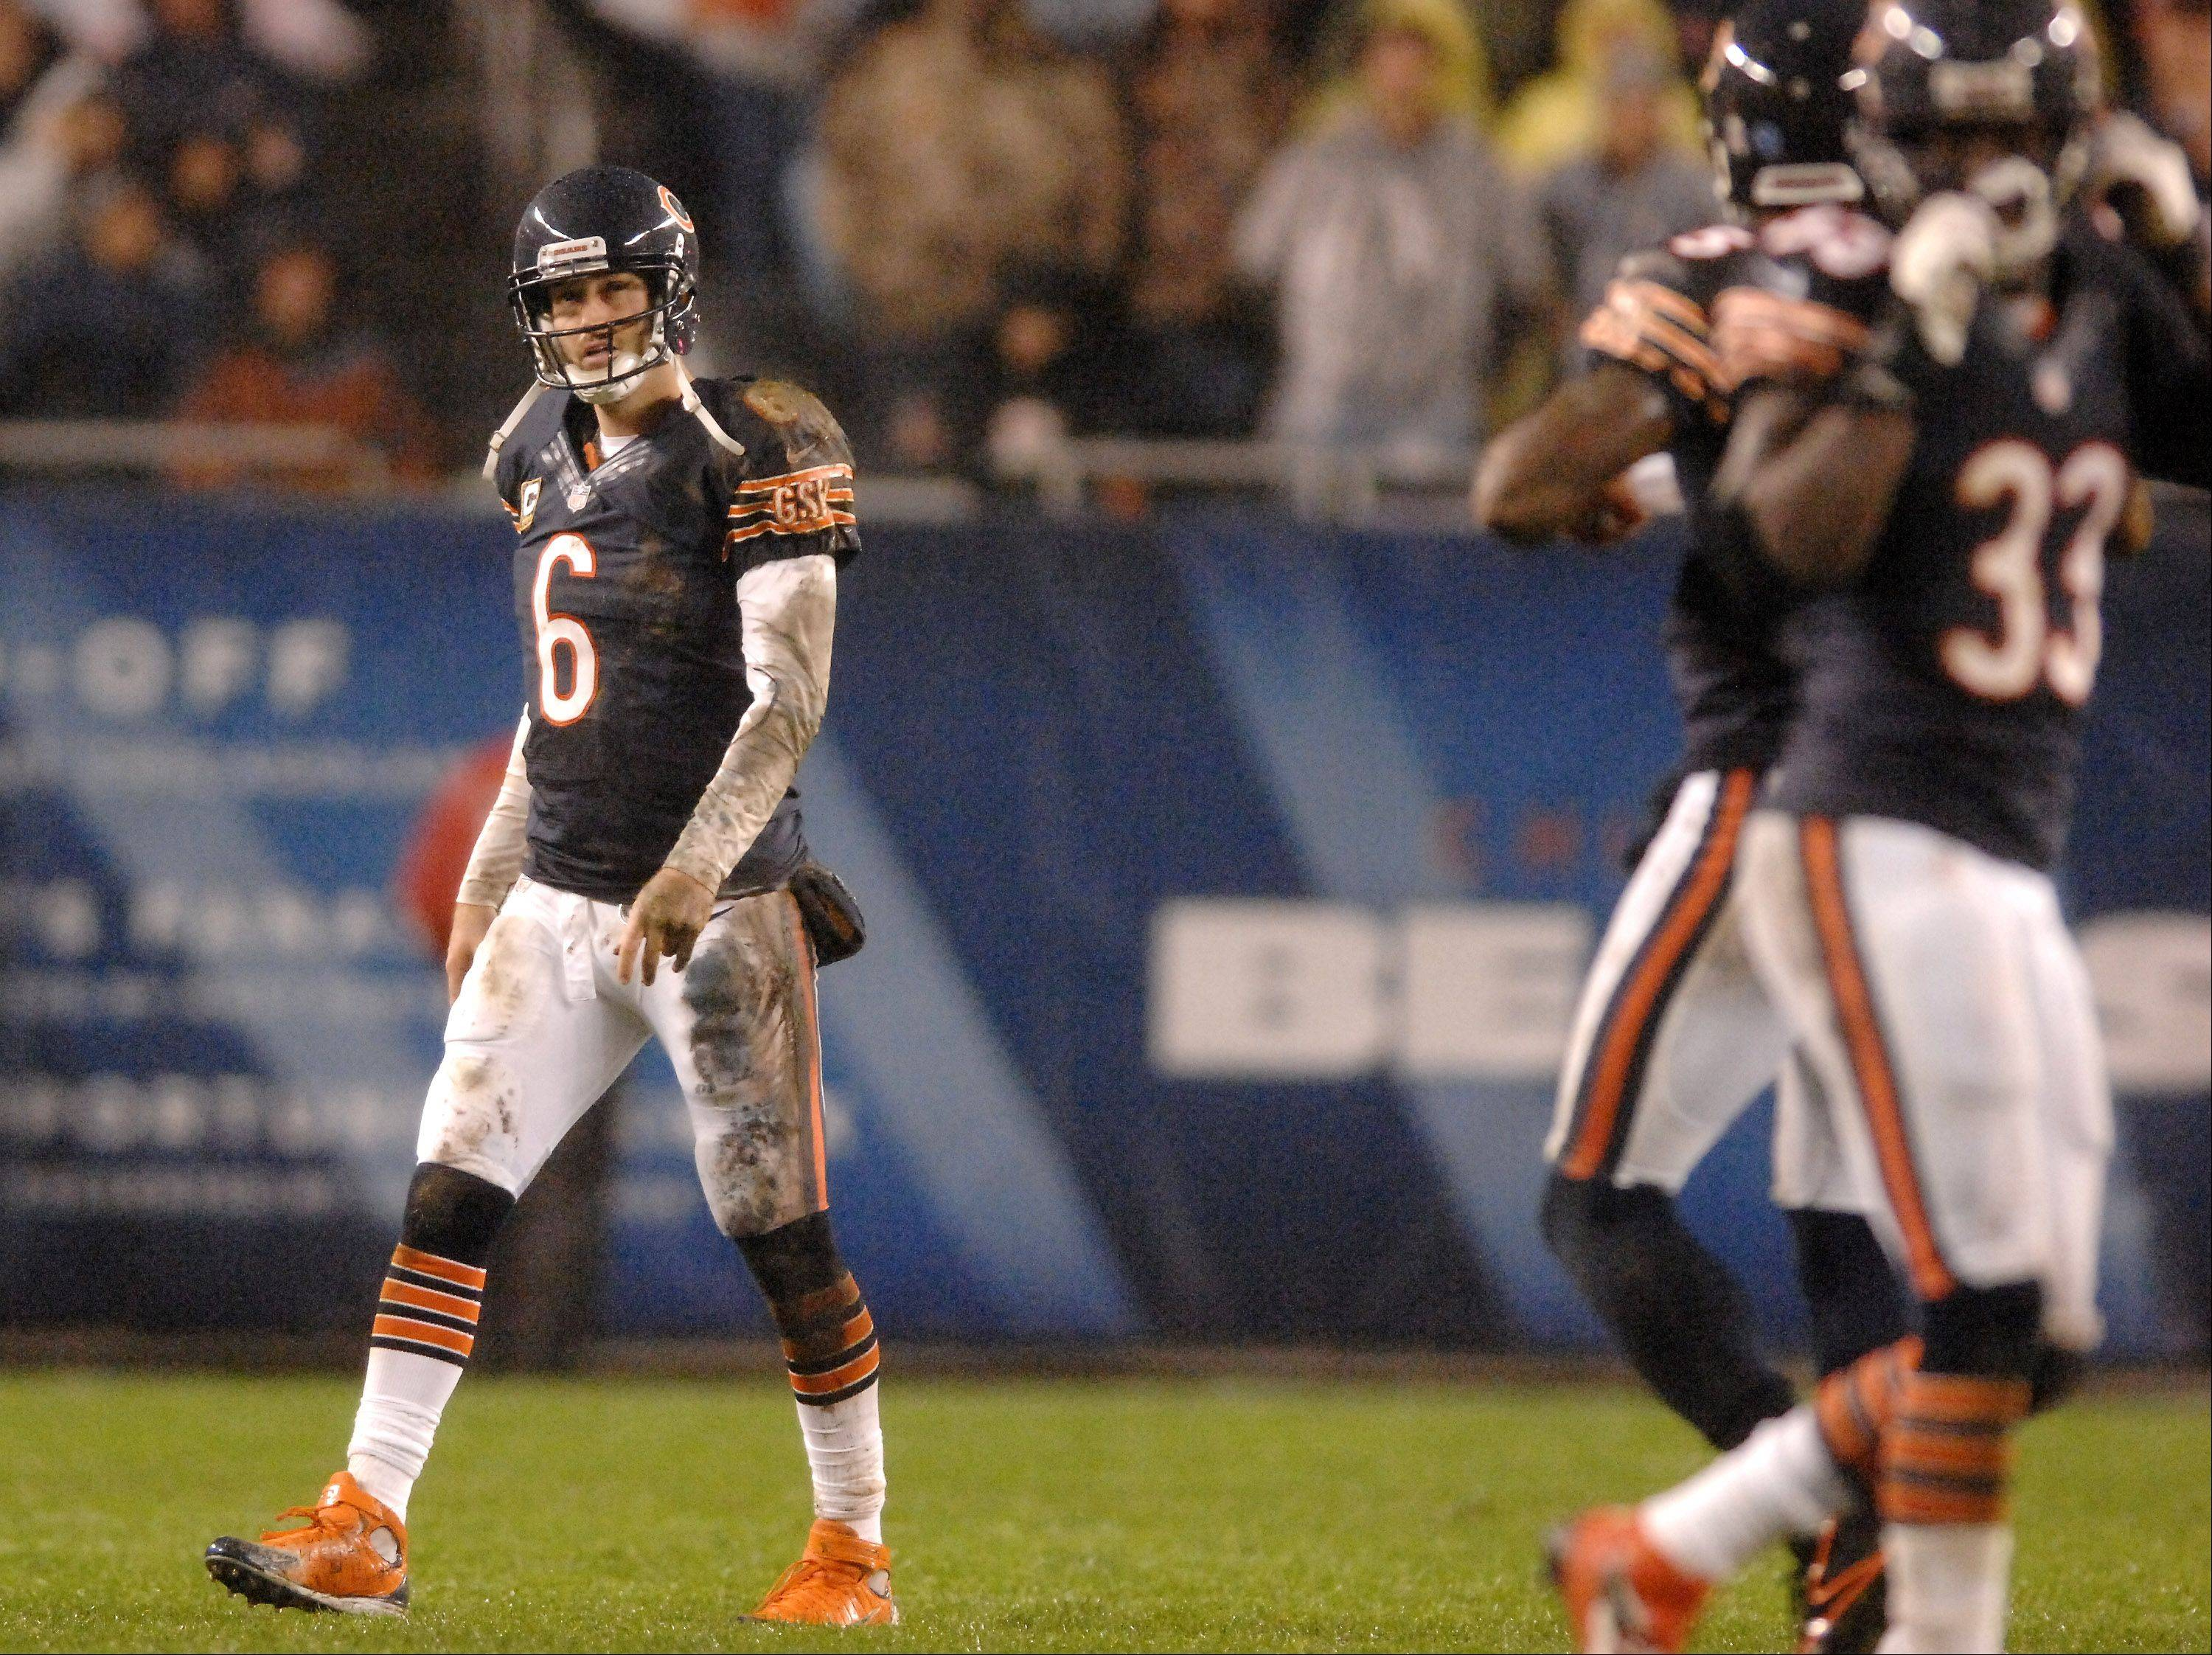 Chicago Bears quarterback Jay Cutler (6) walks off the field after his second first half interception.